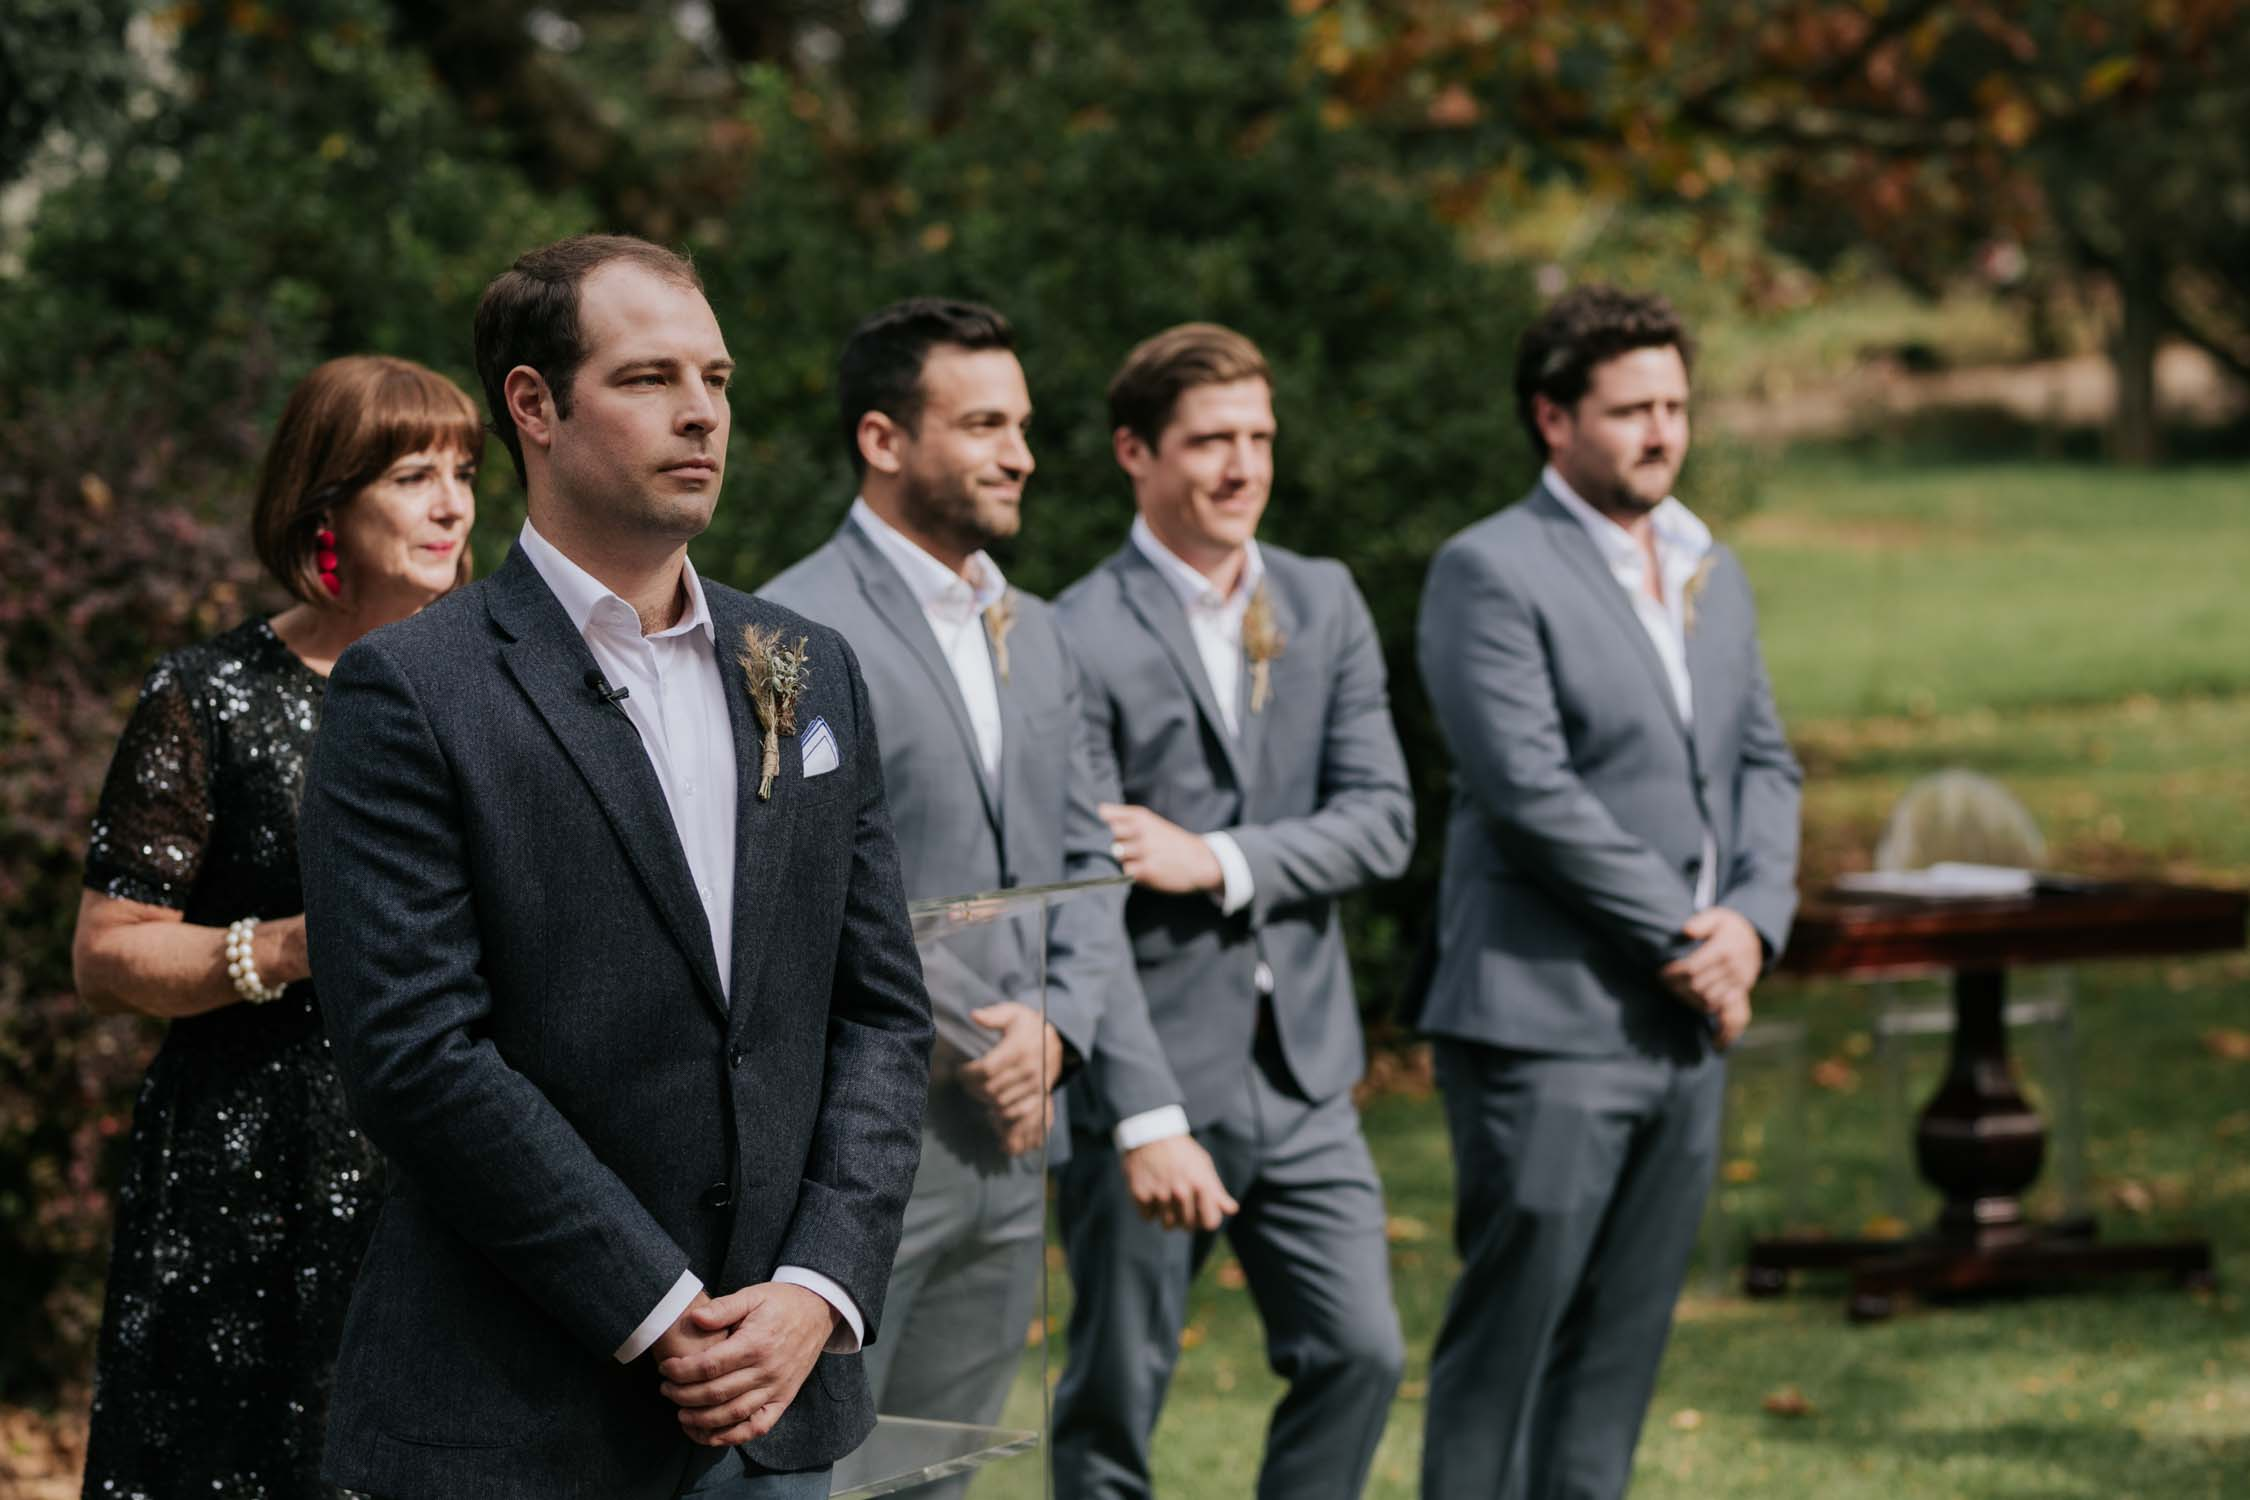 Emotional groom watching his bride walk down the aisle. He is standing with his groomsmen wearing grey suits.